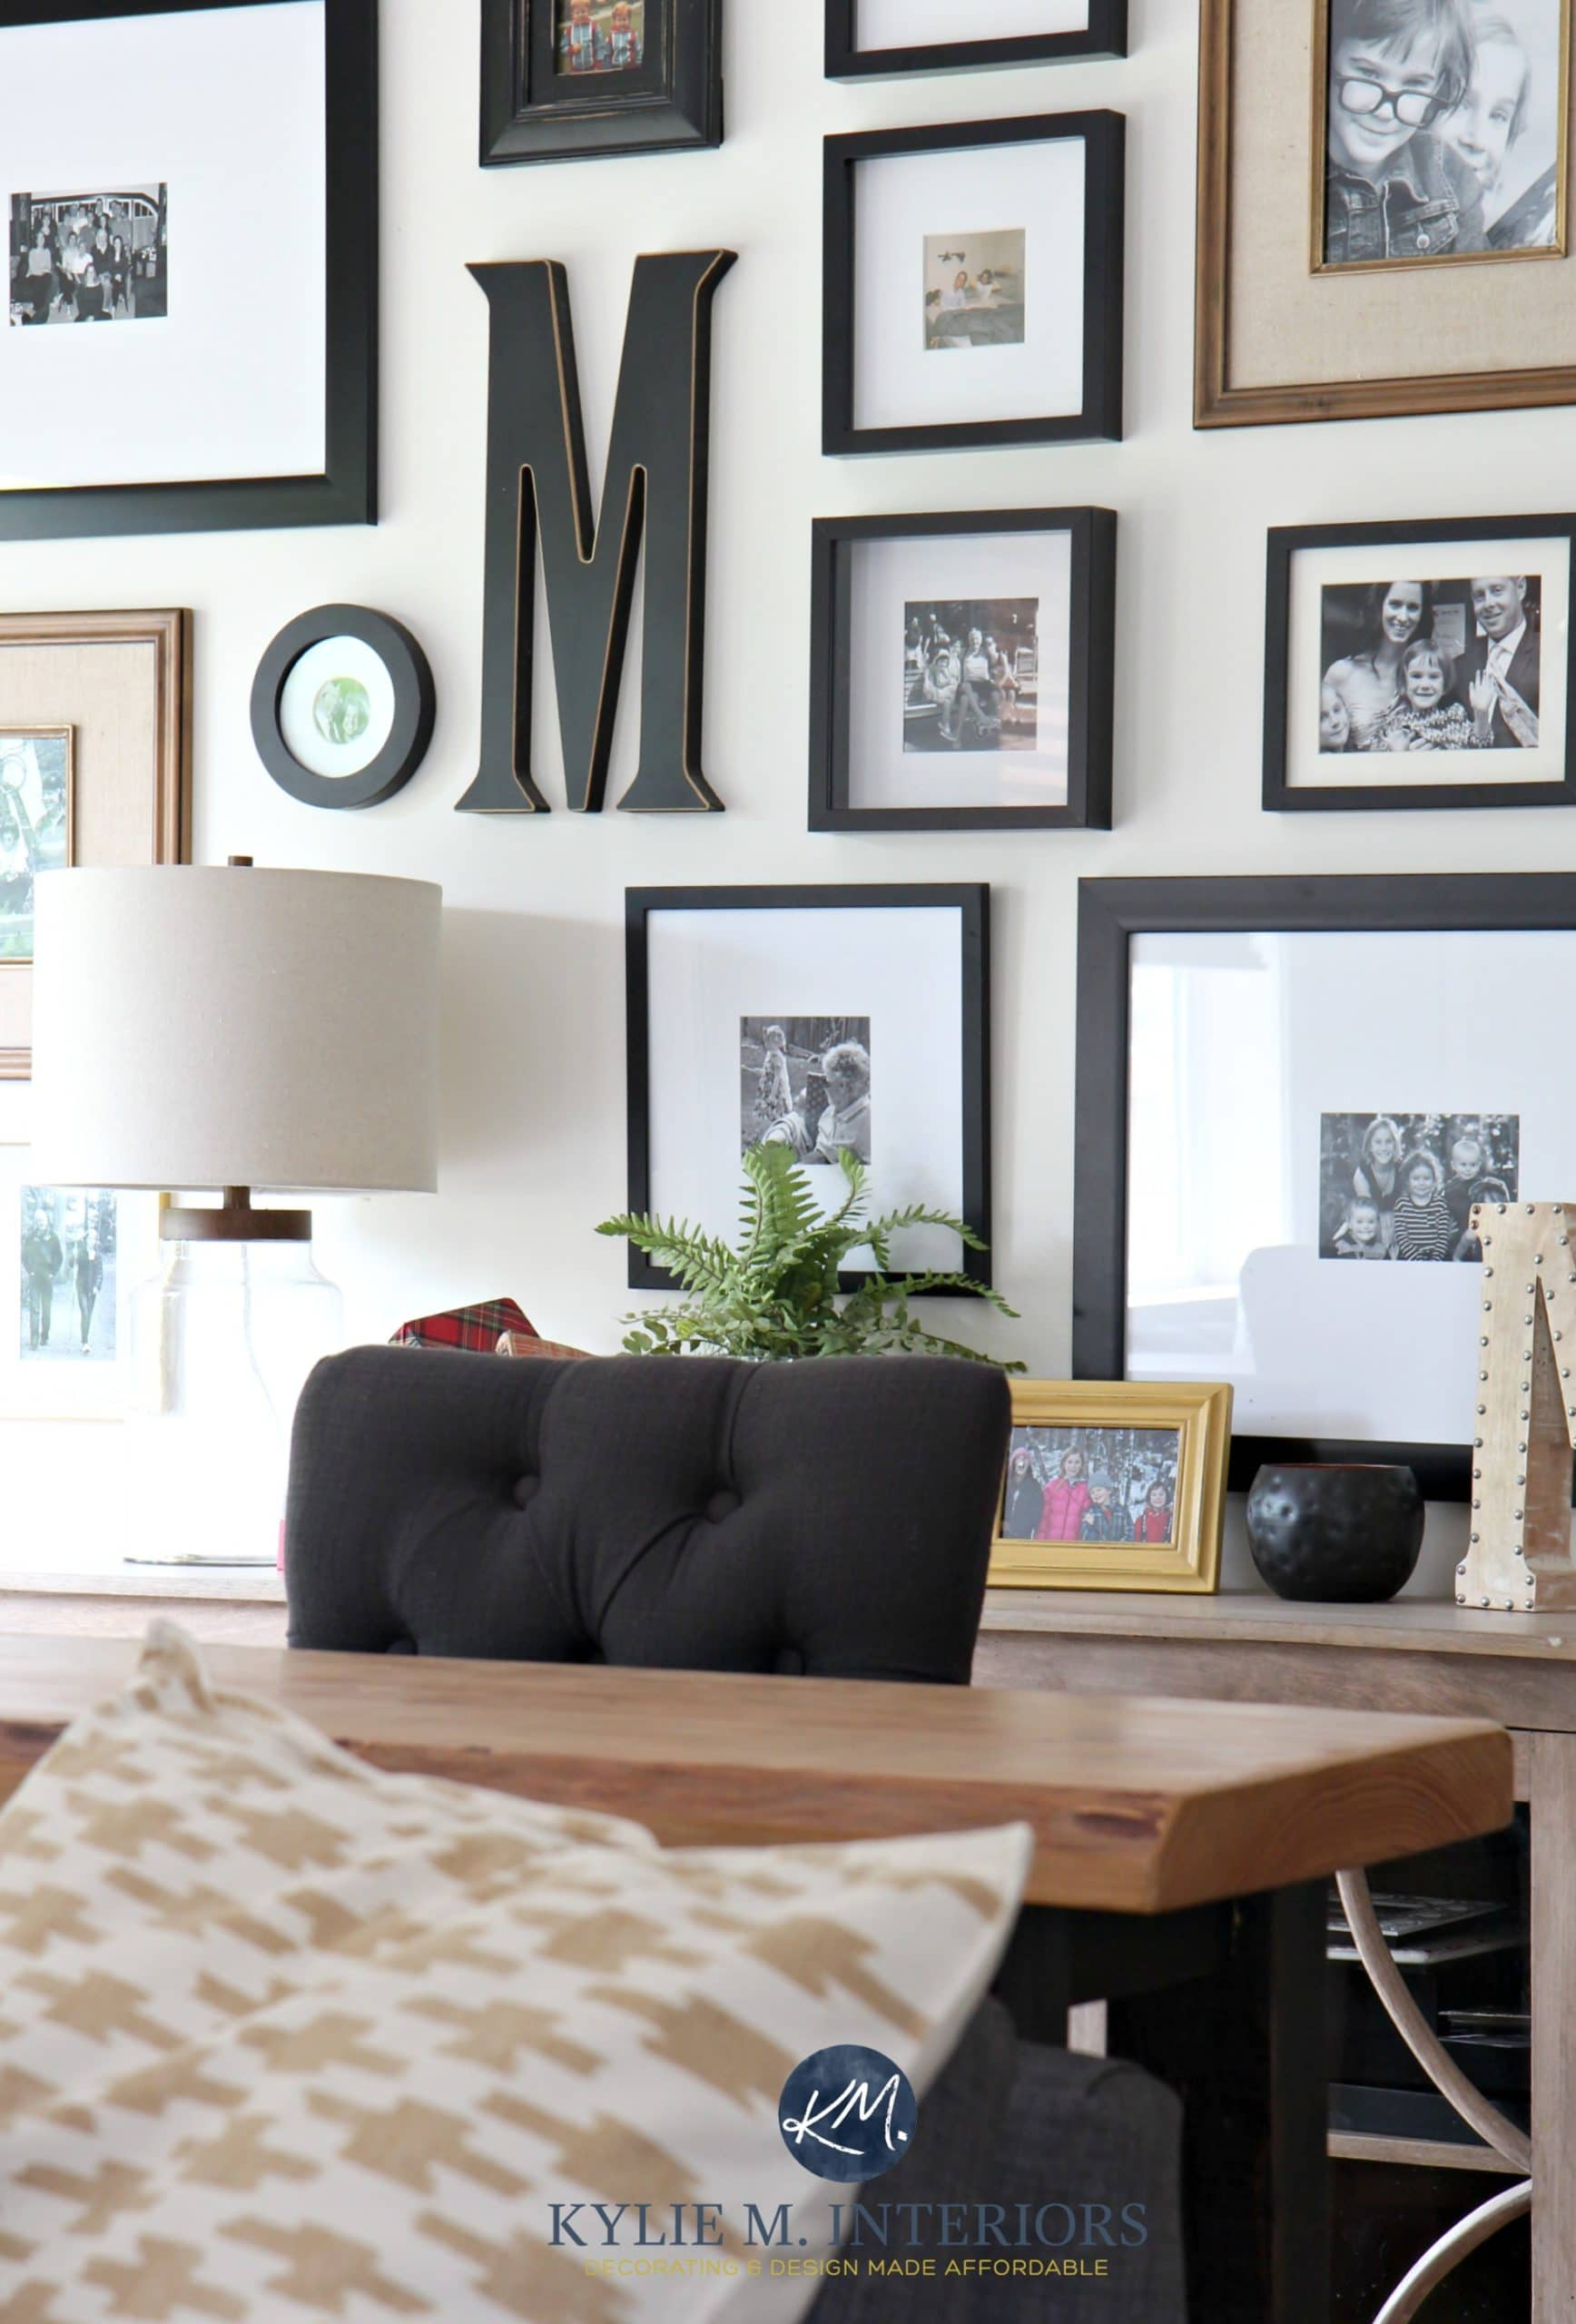 Family Photo Gallery Wall With Home Decor Kylie M